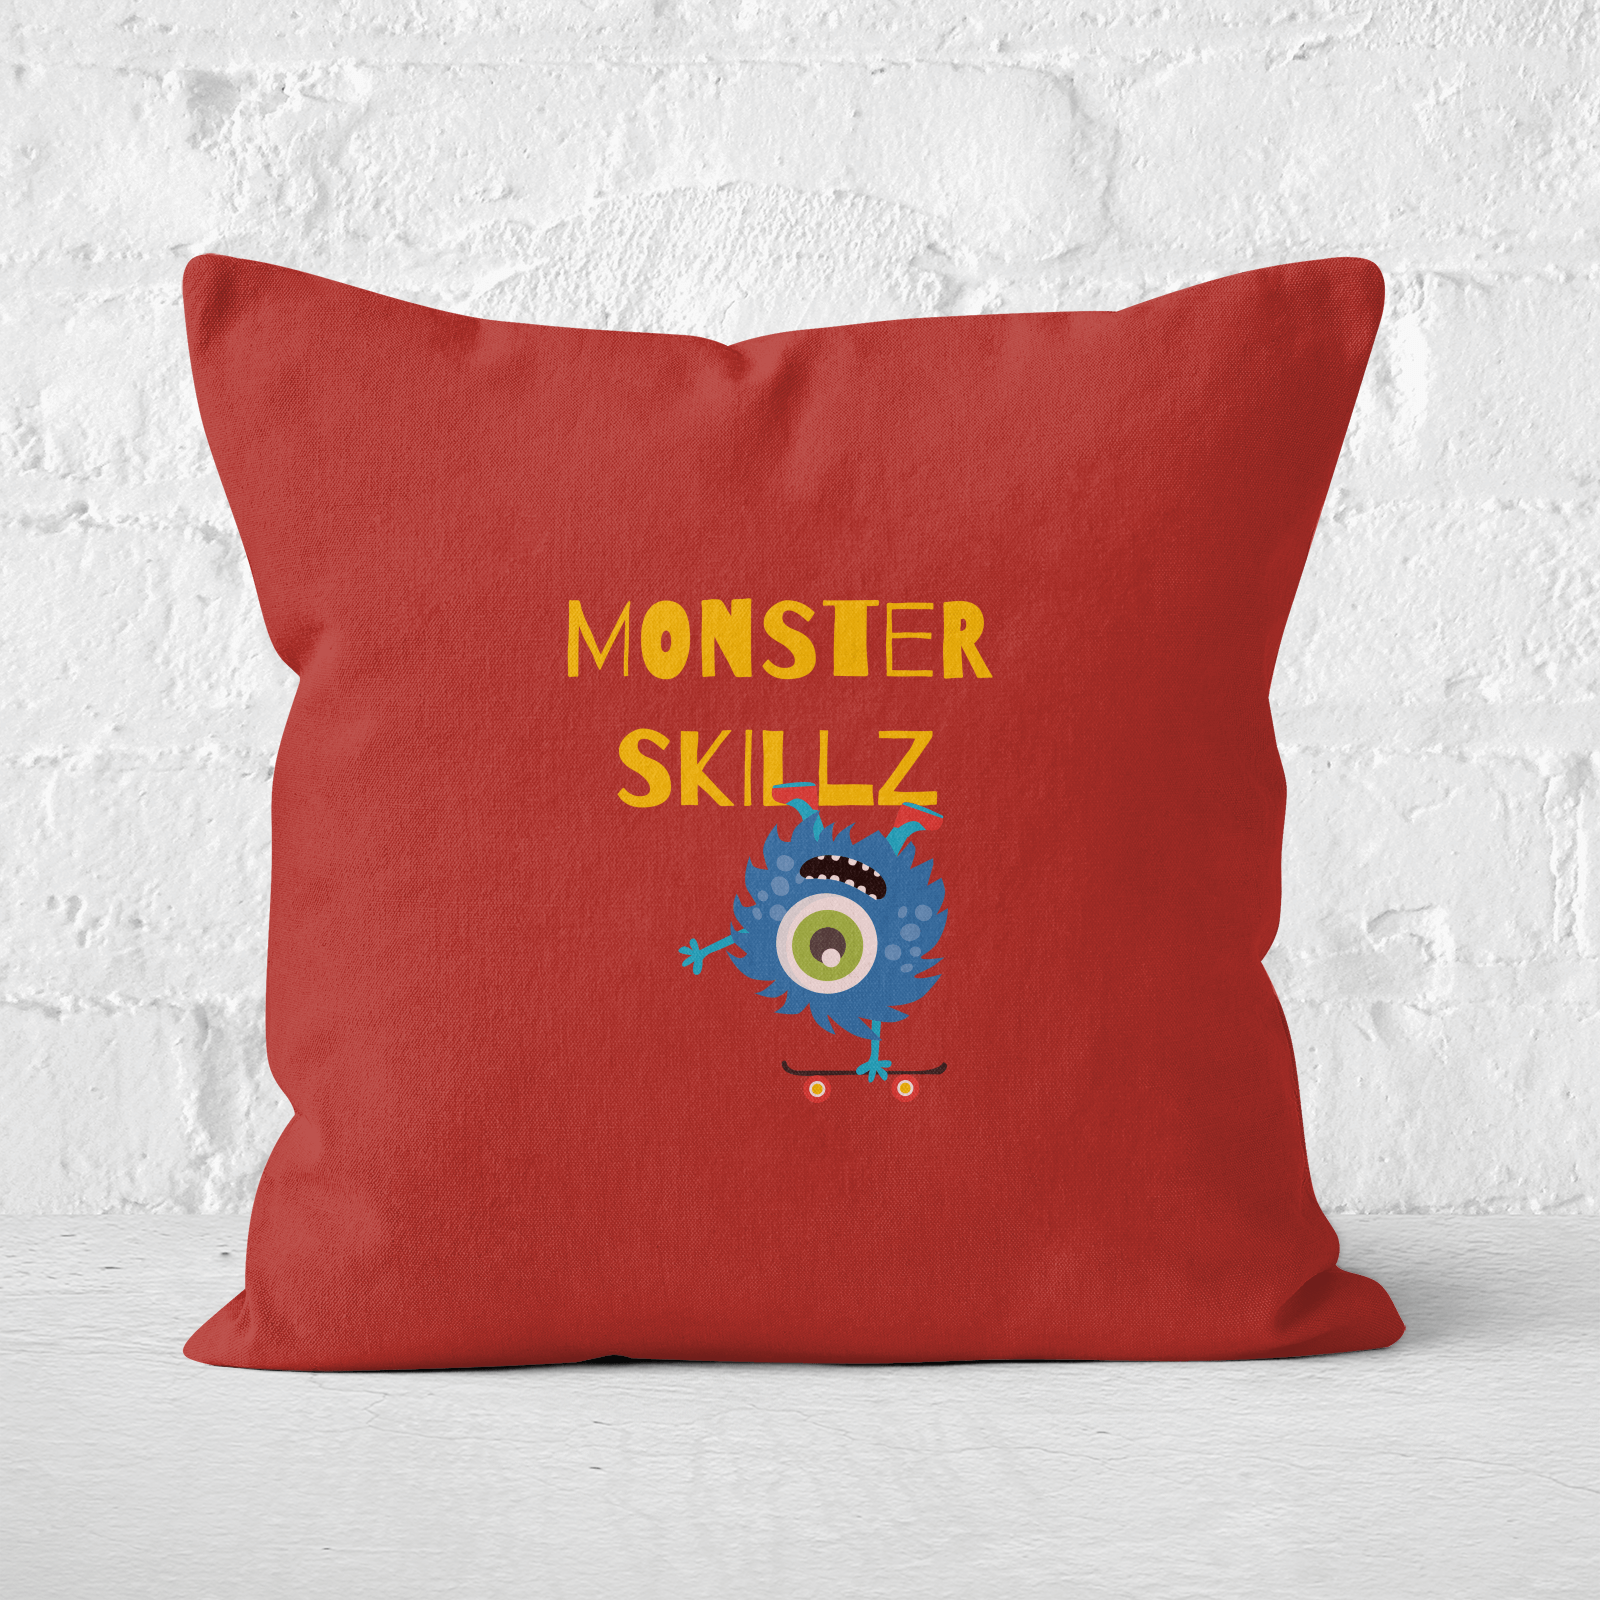 Monster Skillz Square Cushion   40x40cm   Soft Touch